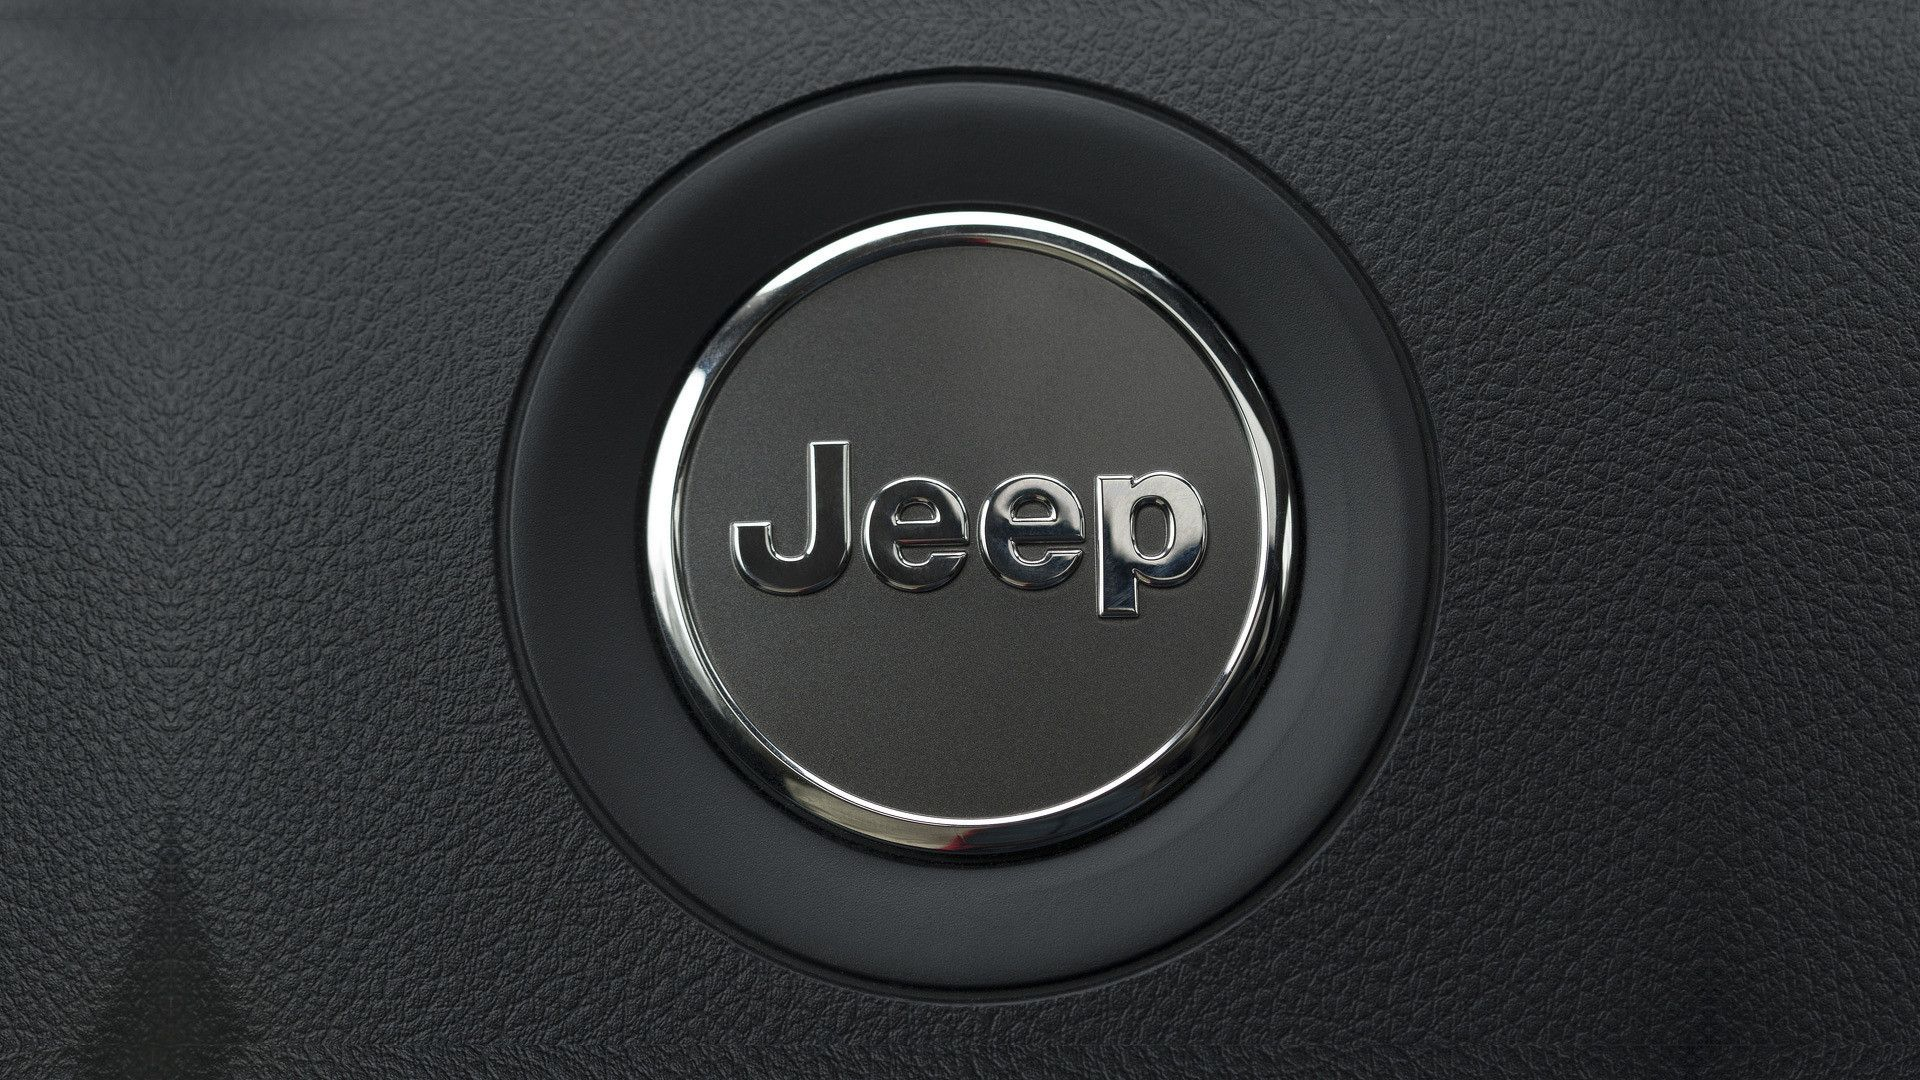 Jeep Logo Wallpapers Top Free Jeep Logo Backgrounds